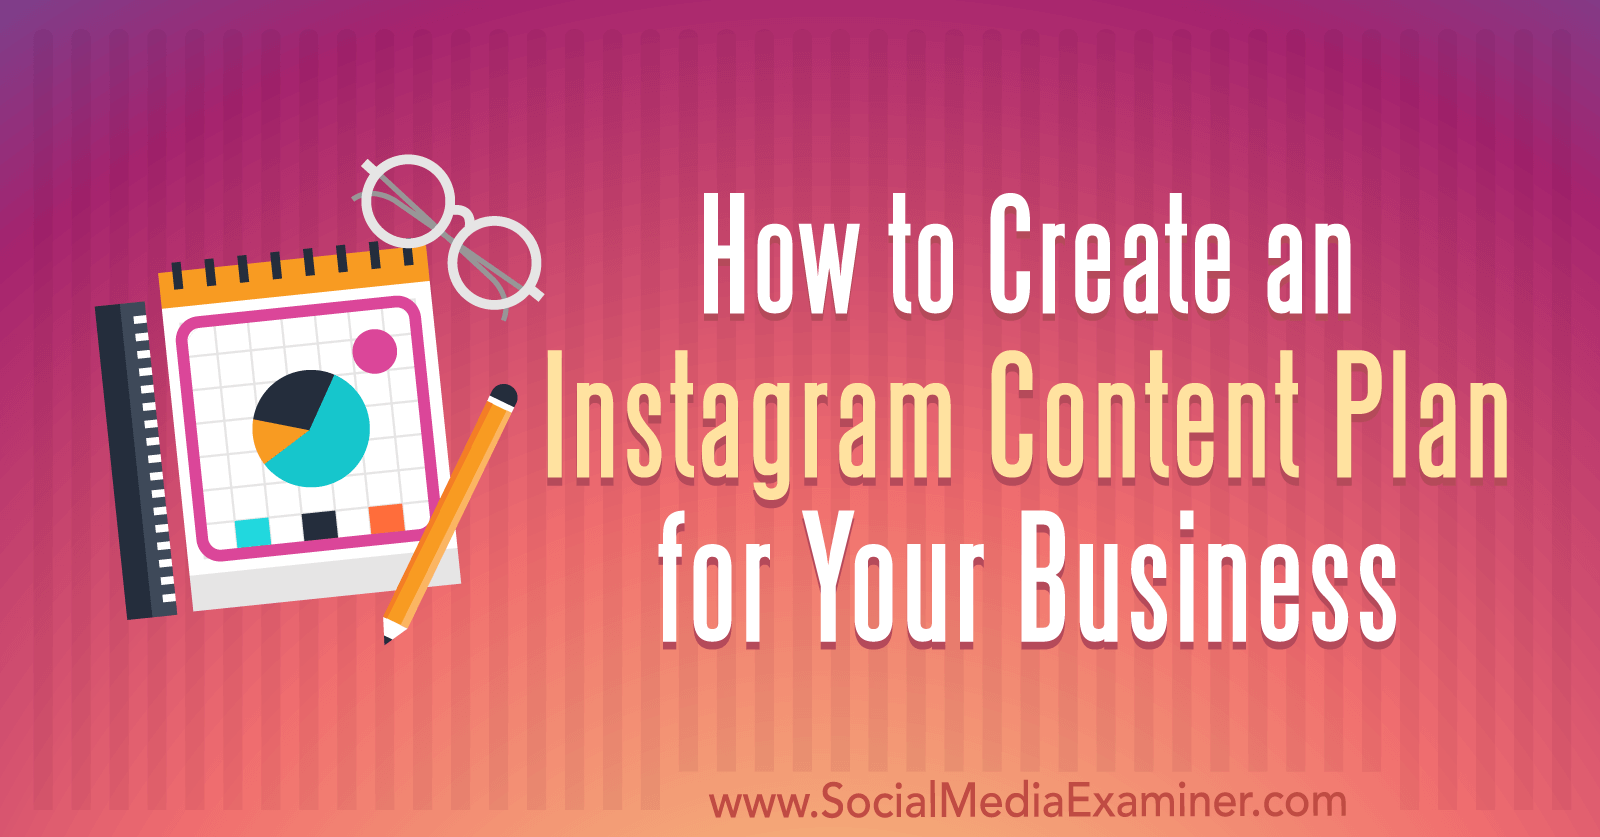 How To Create An Instagram Content Plan For Your Business Social Media Examiner